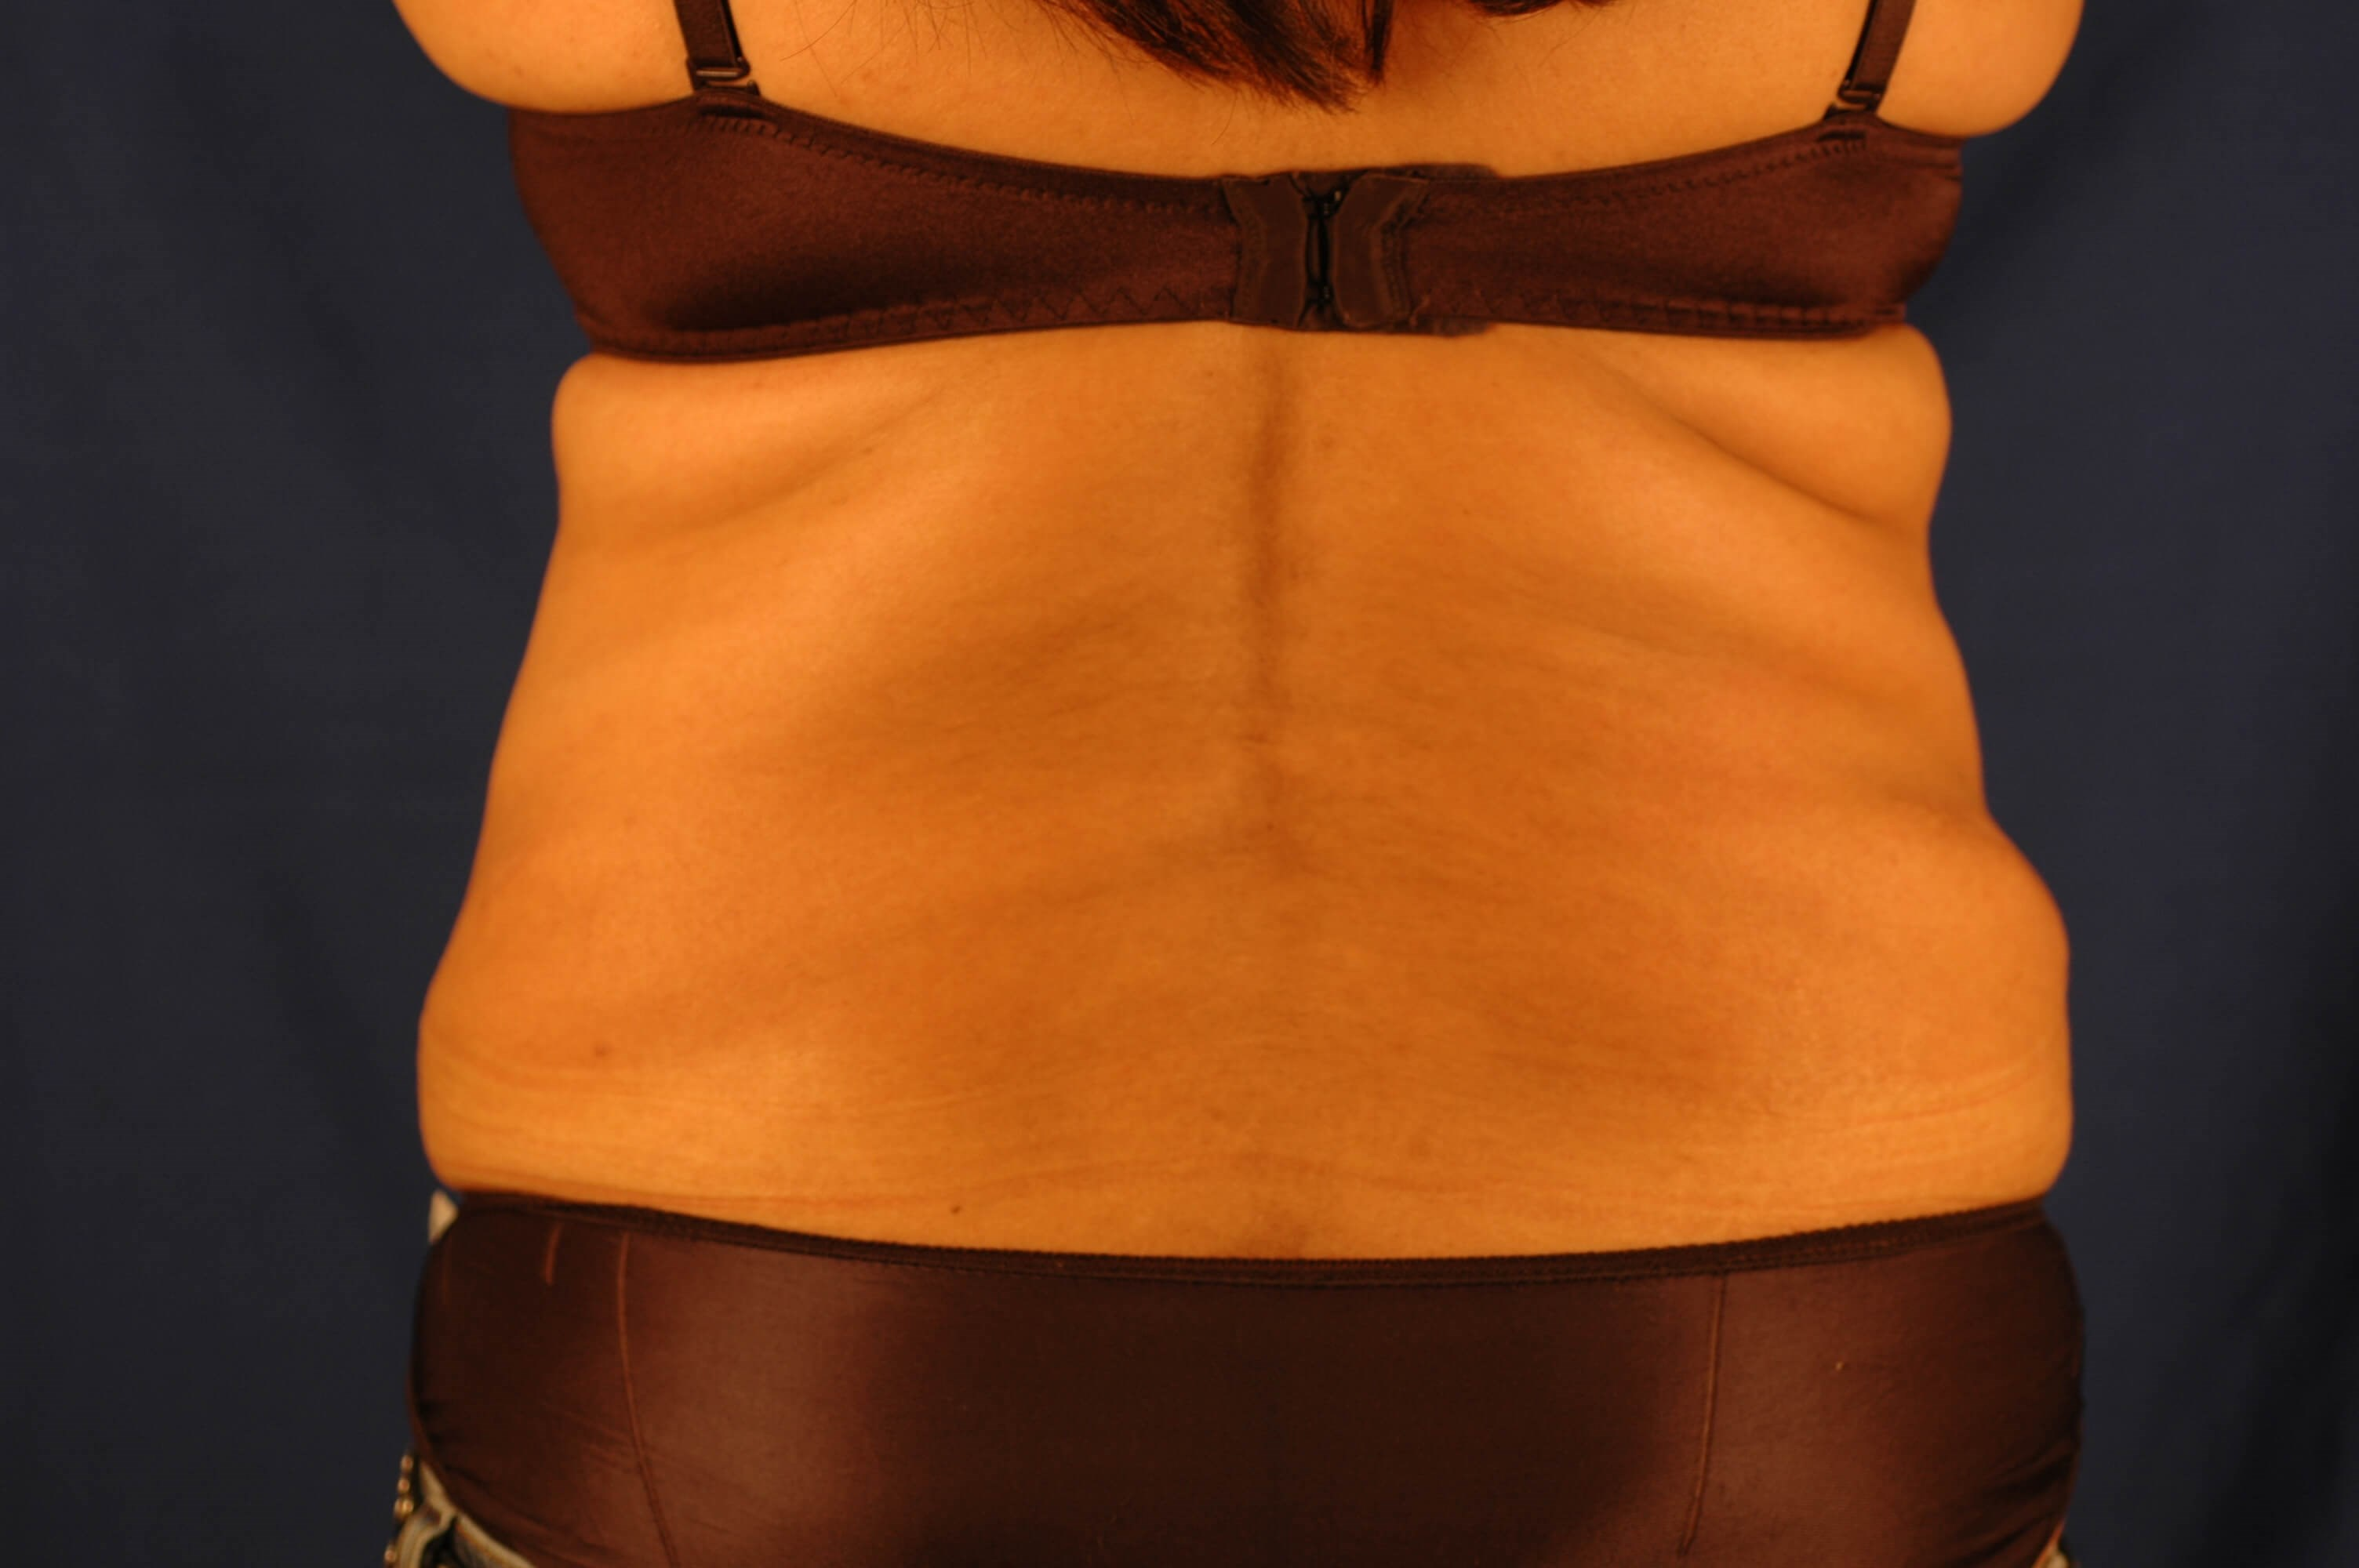 Newport Beach Body Contouring After Back View